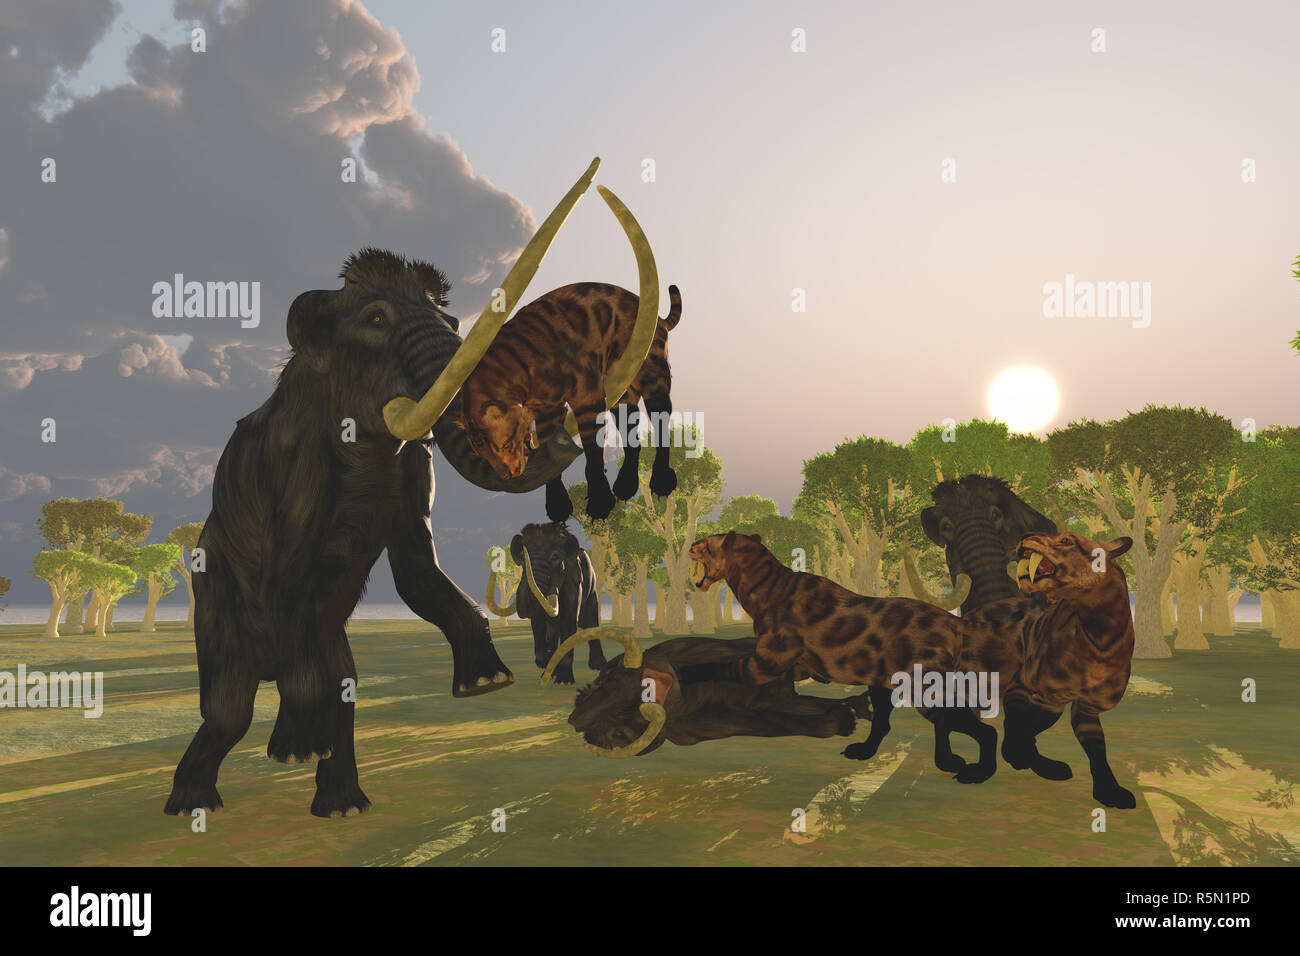 Mammoth and Saber-Toothed Cat - Stock Image